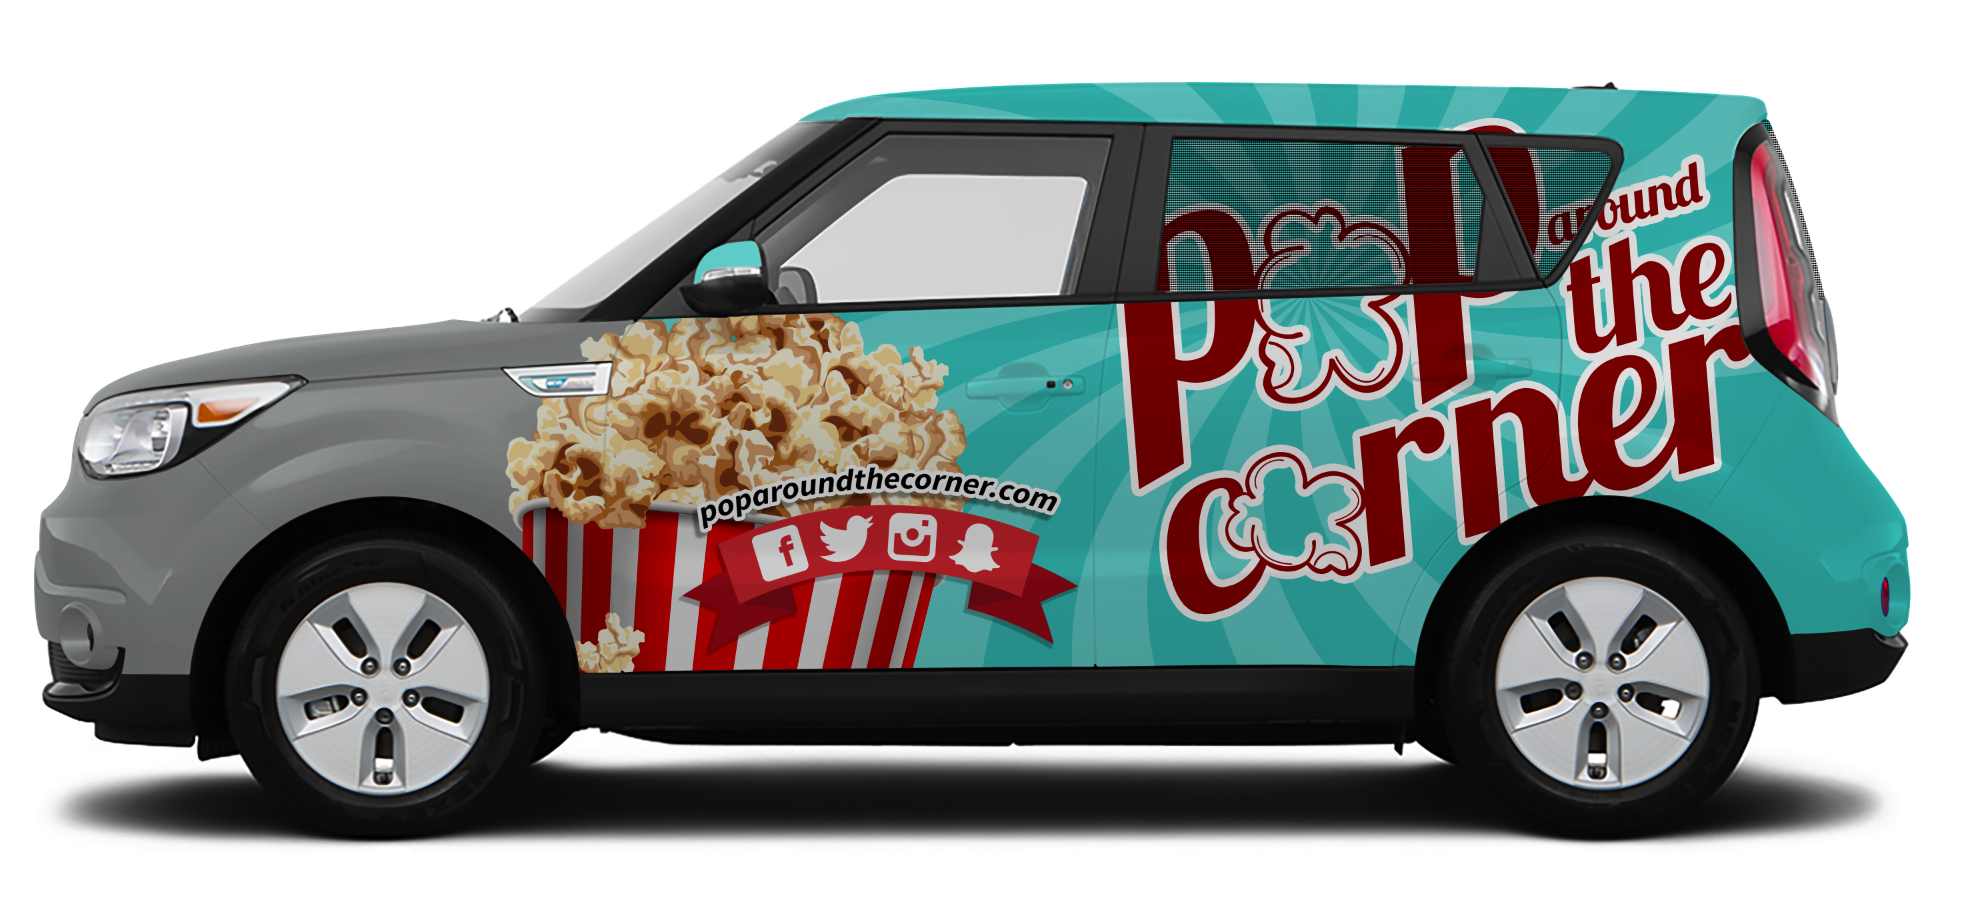 Driver Design – Pop Around the Corner Vehicle Wrap